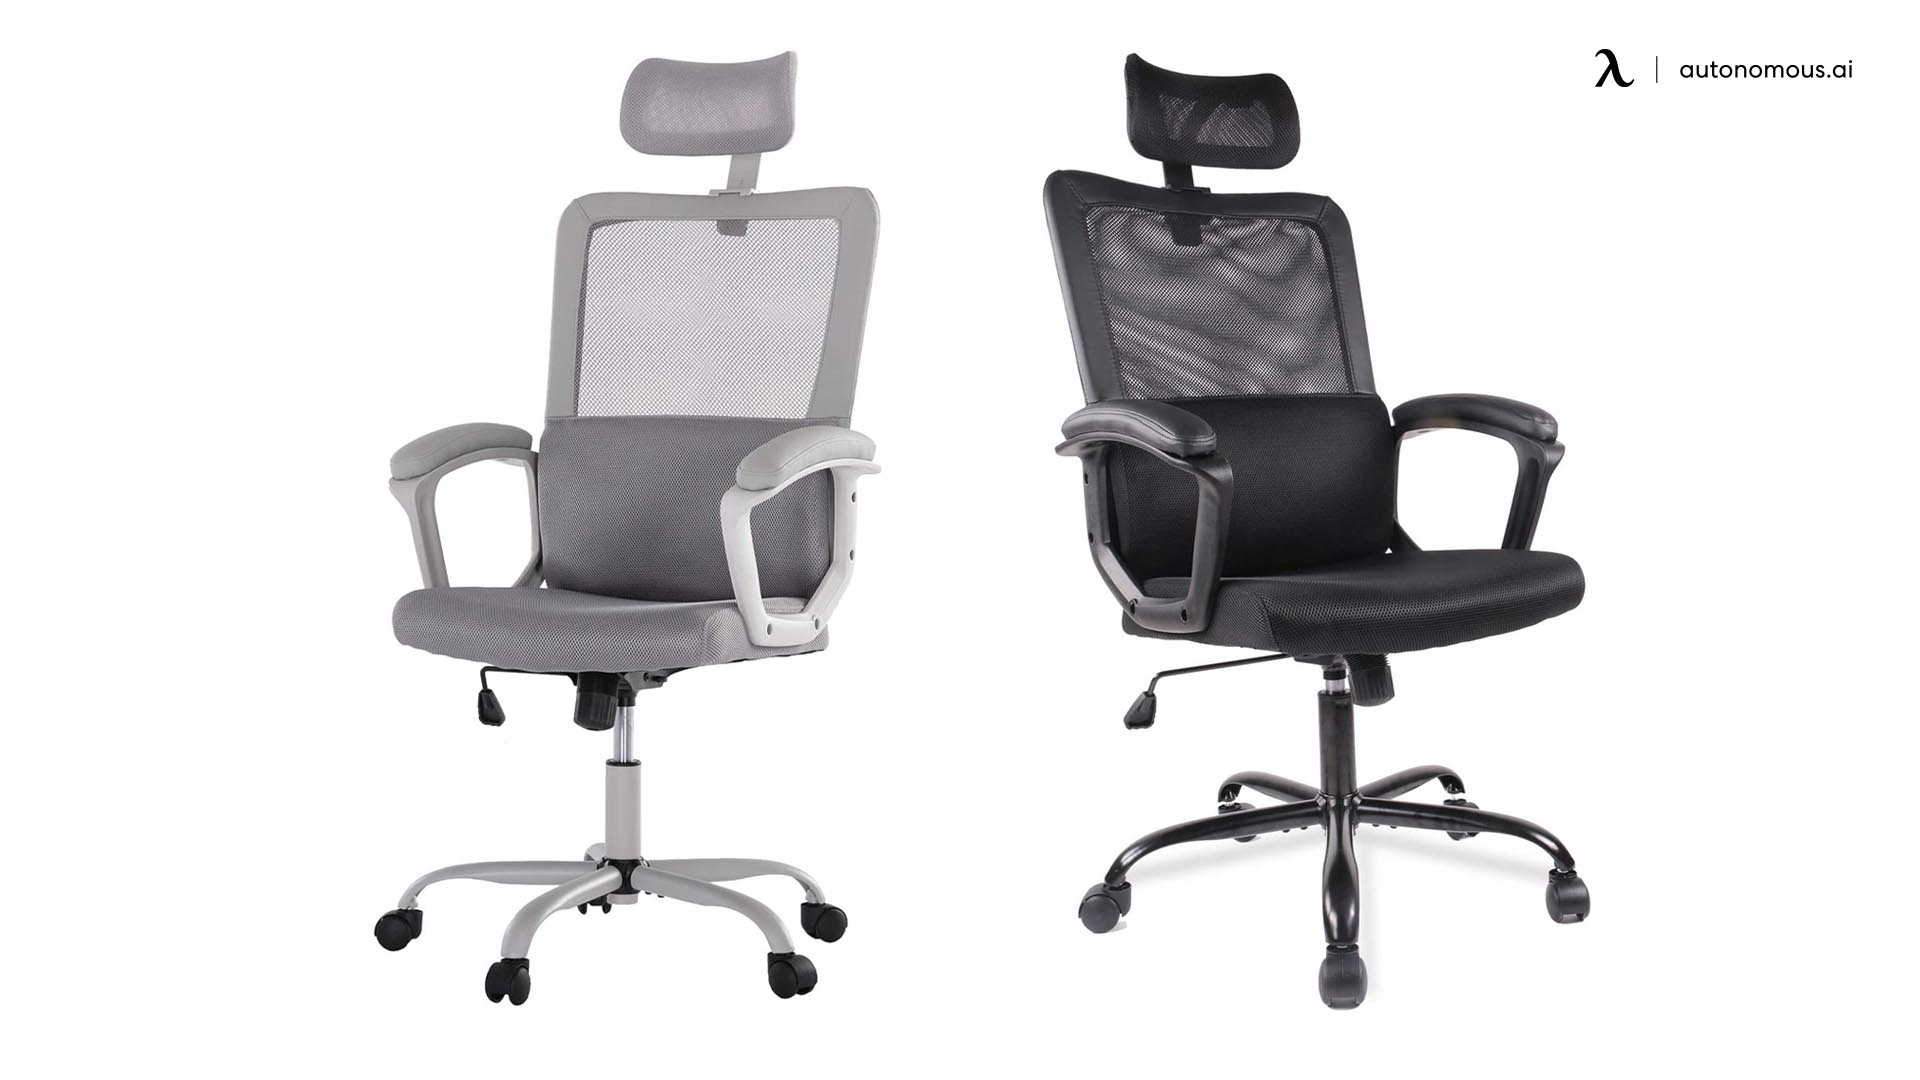 Smug Office Conference Room Chair